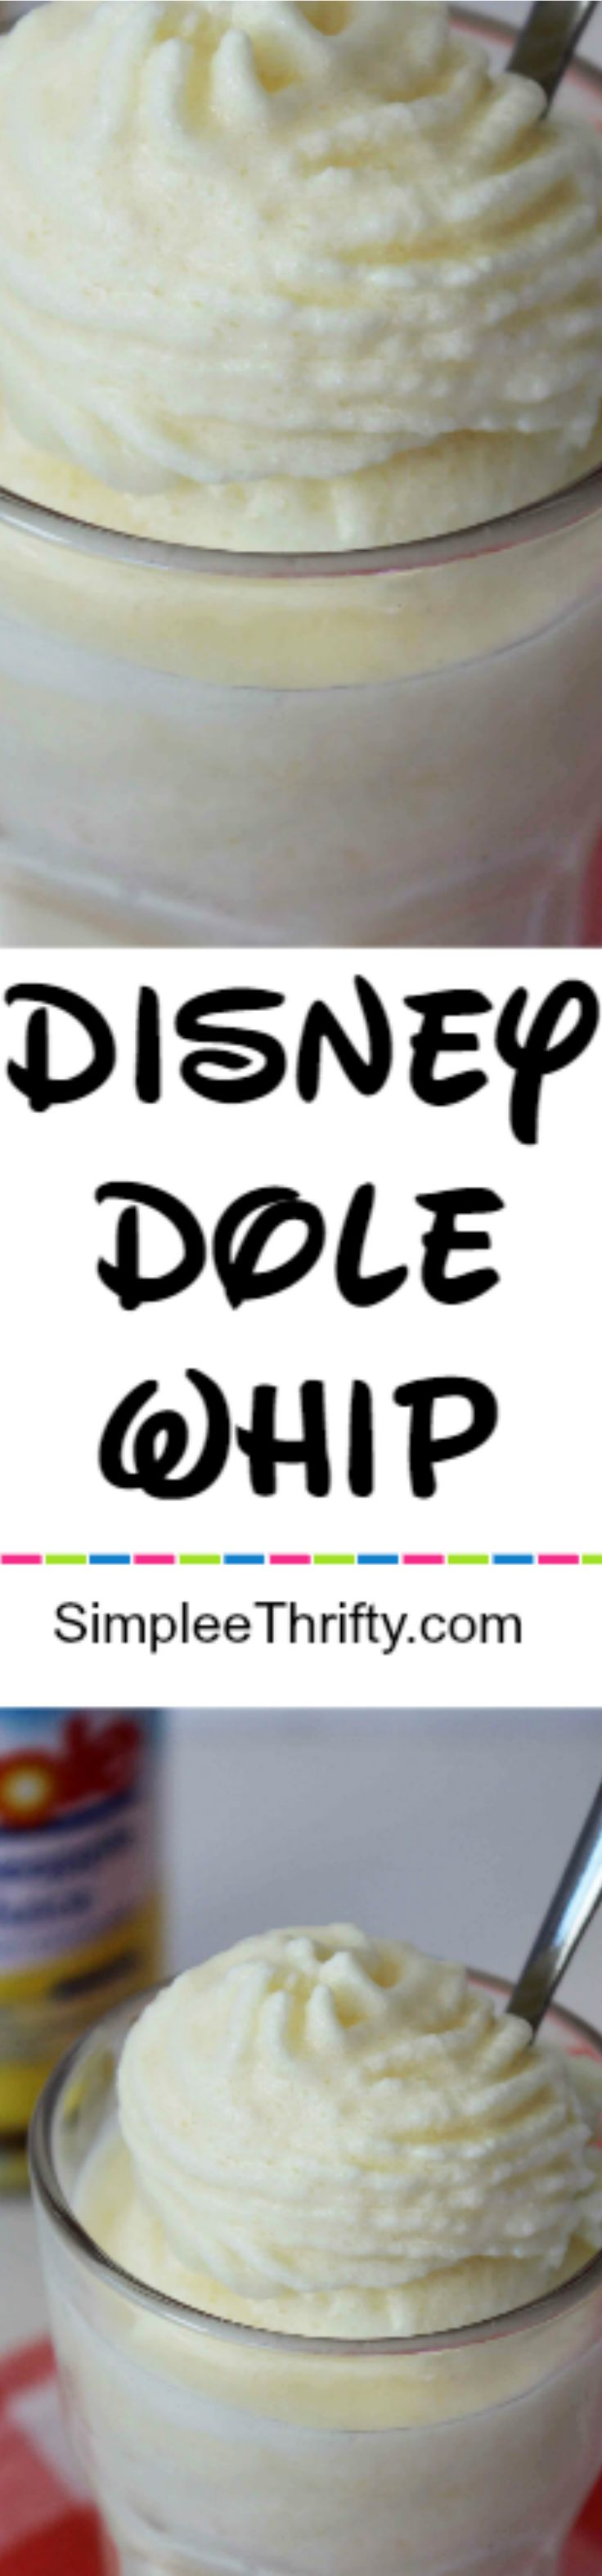 Get this delicious Copycat Disney Dole Pineapple Whip right at home! Great way to save on this very popular Disney treat!